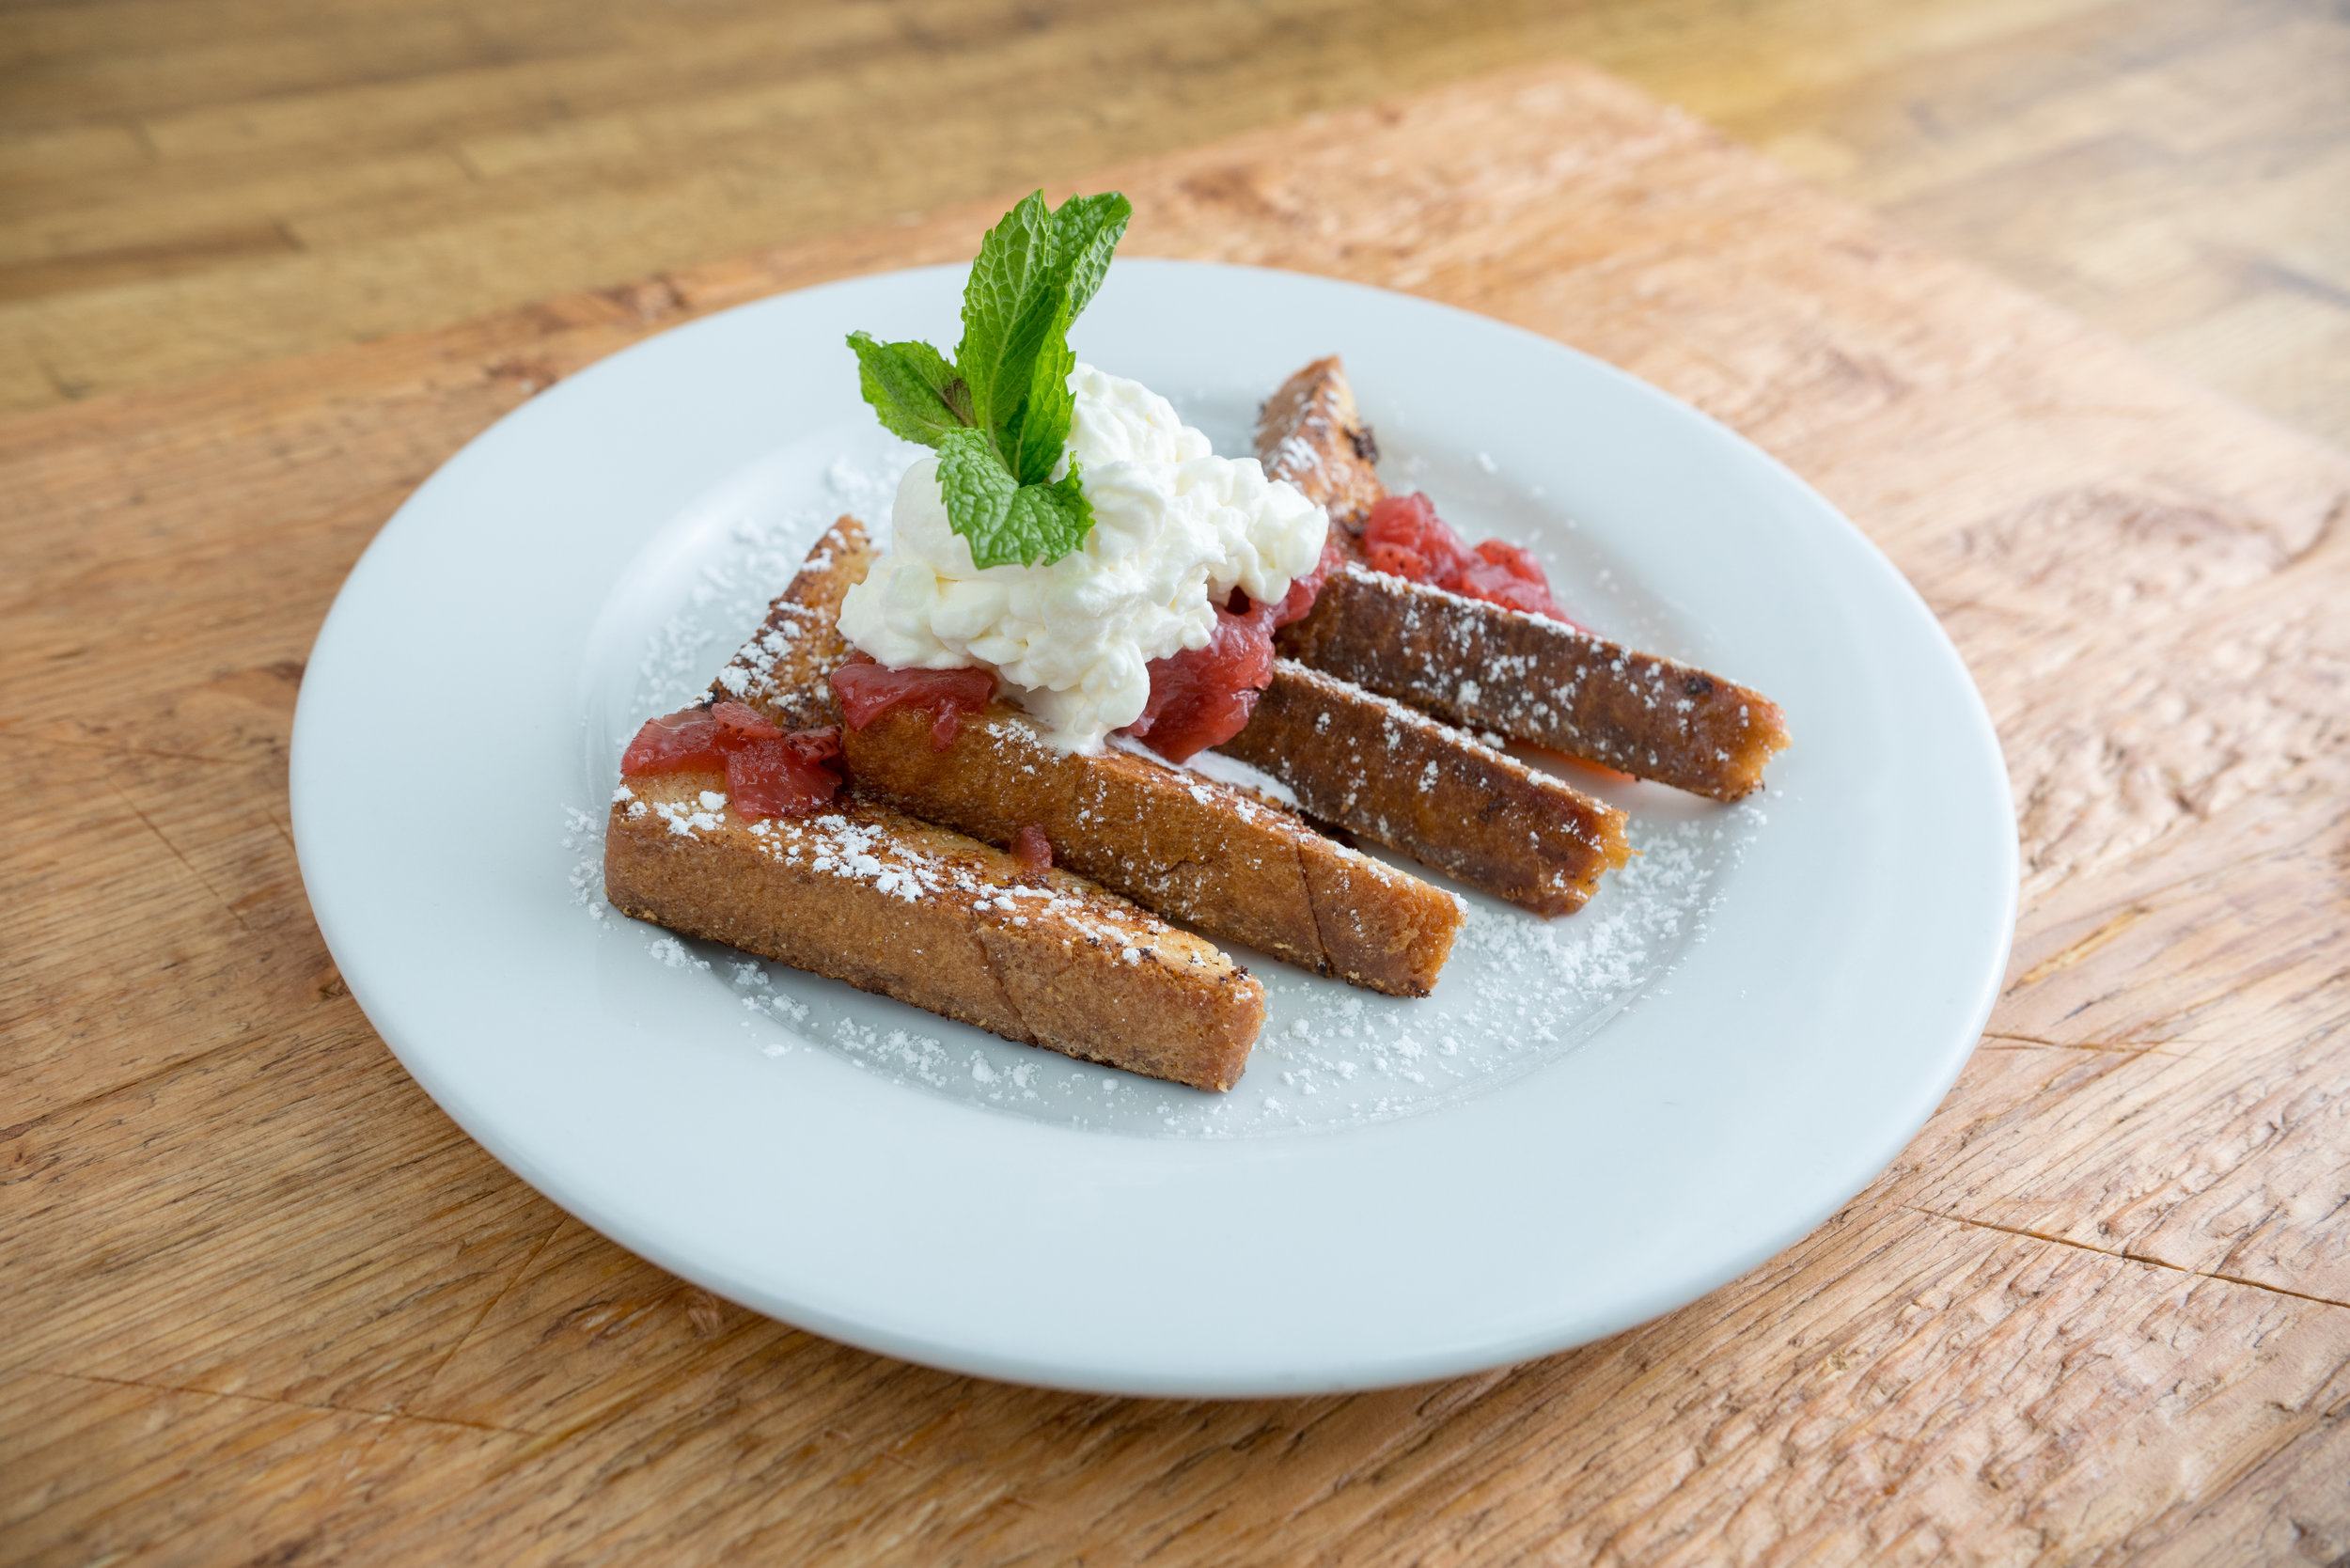 Kitchen_In_The_Canyon-FrenchToast.jpg